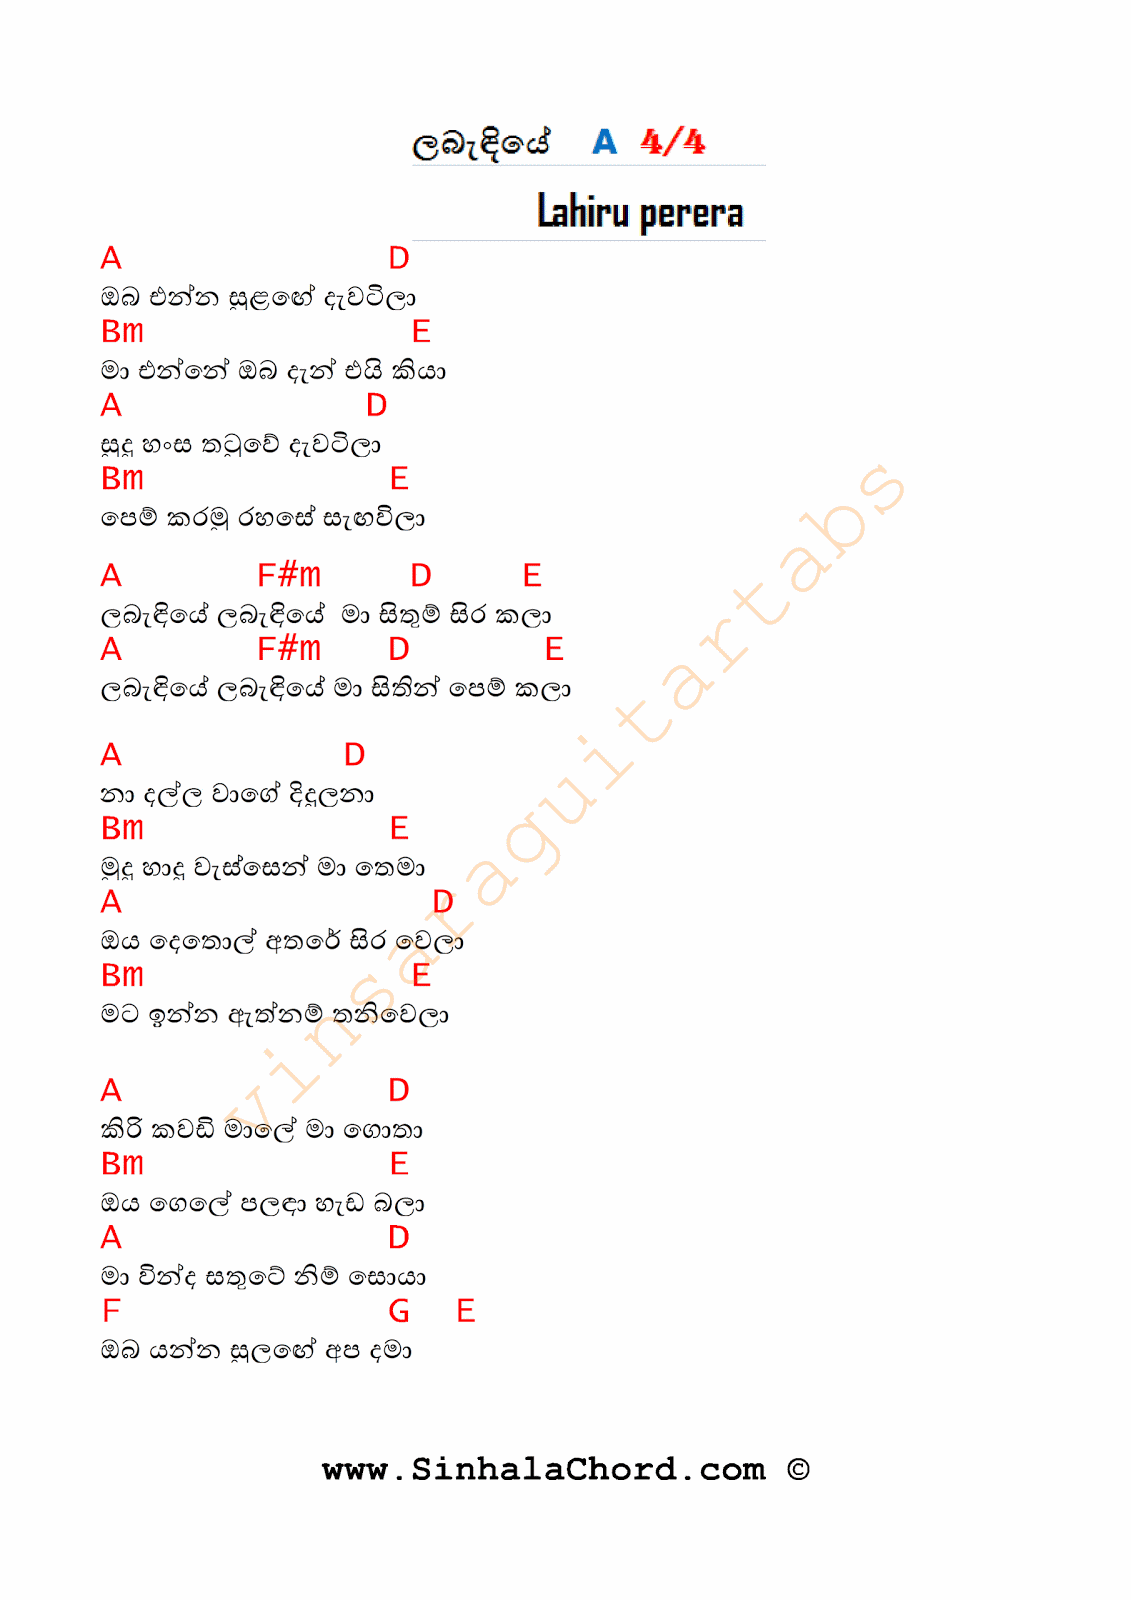 Uni guitar chords gallery guitar chords examples labandiye guitar chord sinhala guitar chordssinhala songs an error occurred fatherlandz gallery hexwebz Gallery